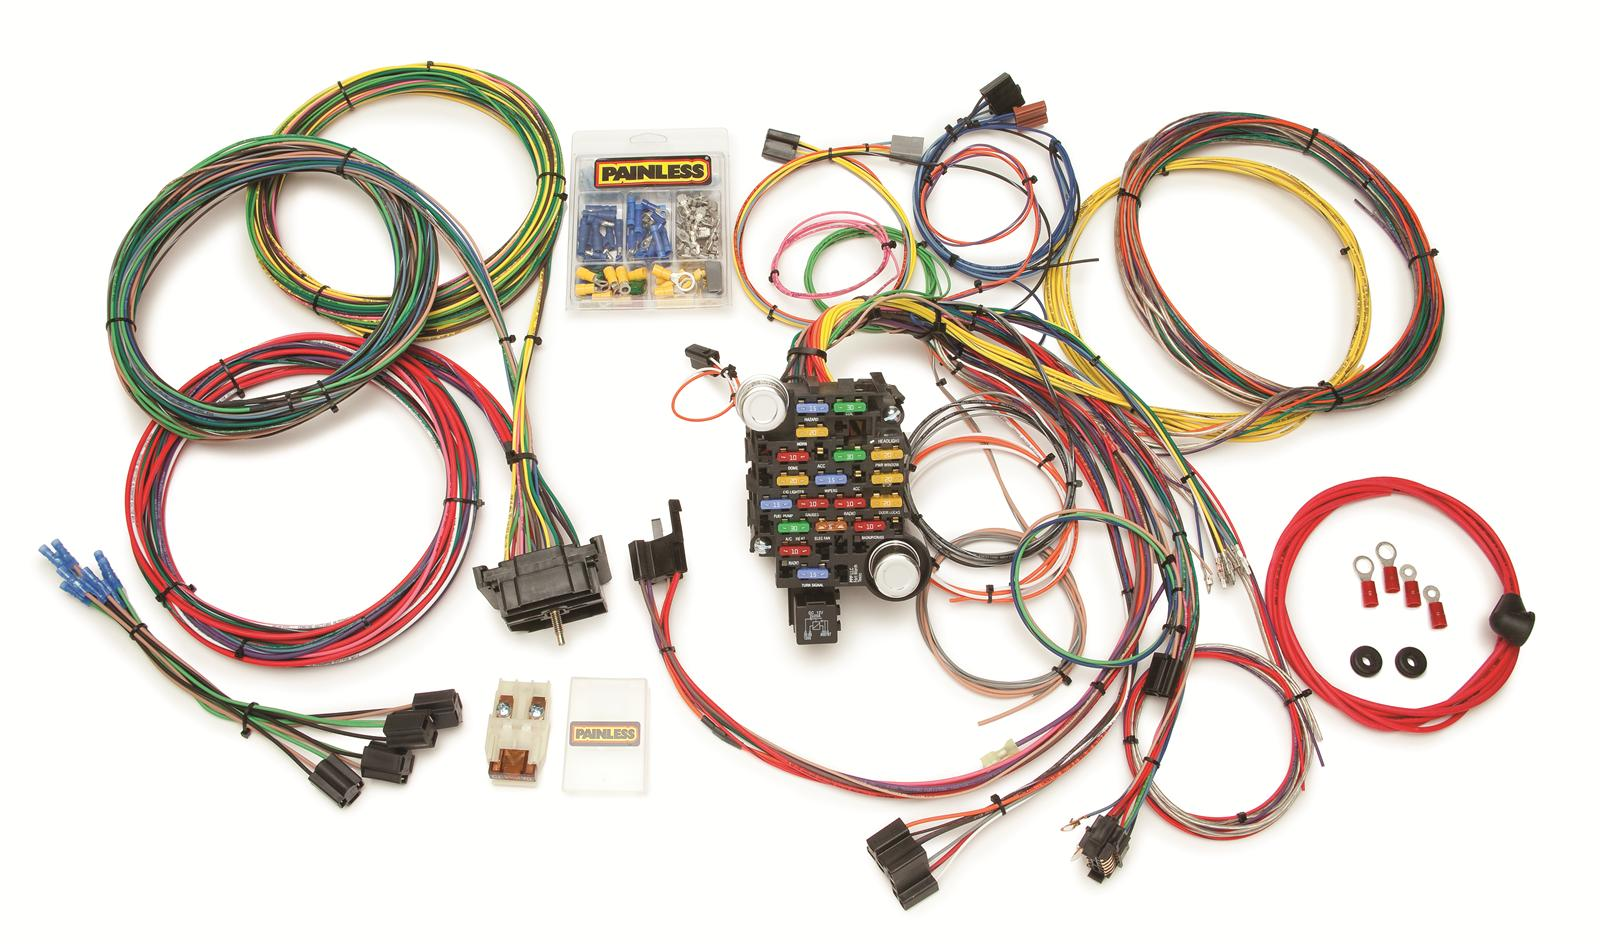 prf 10206_xl painless performance gmc chevy truck harnesses 10206 free Universal Wiring Harness Diagram at webbmarketing.co